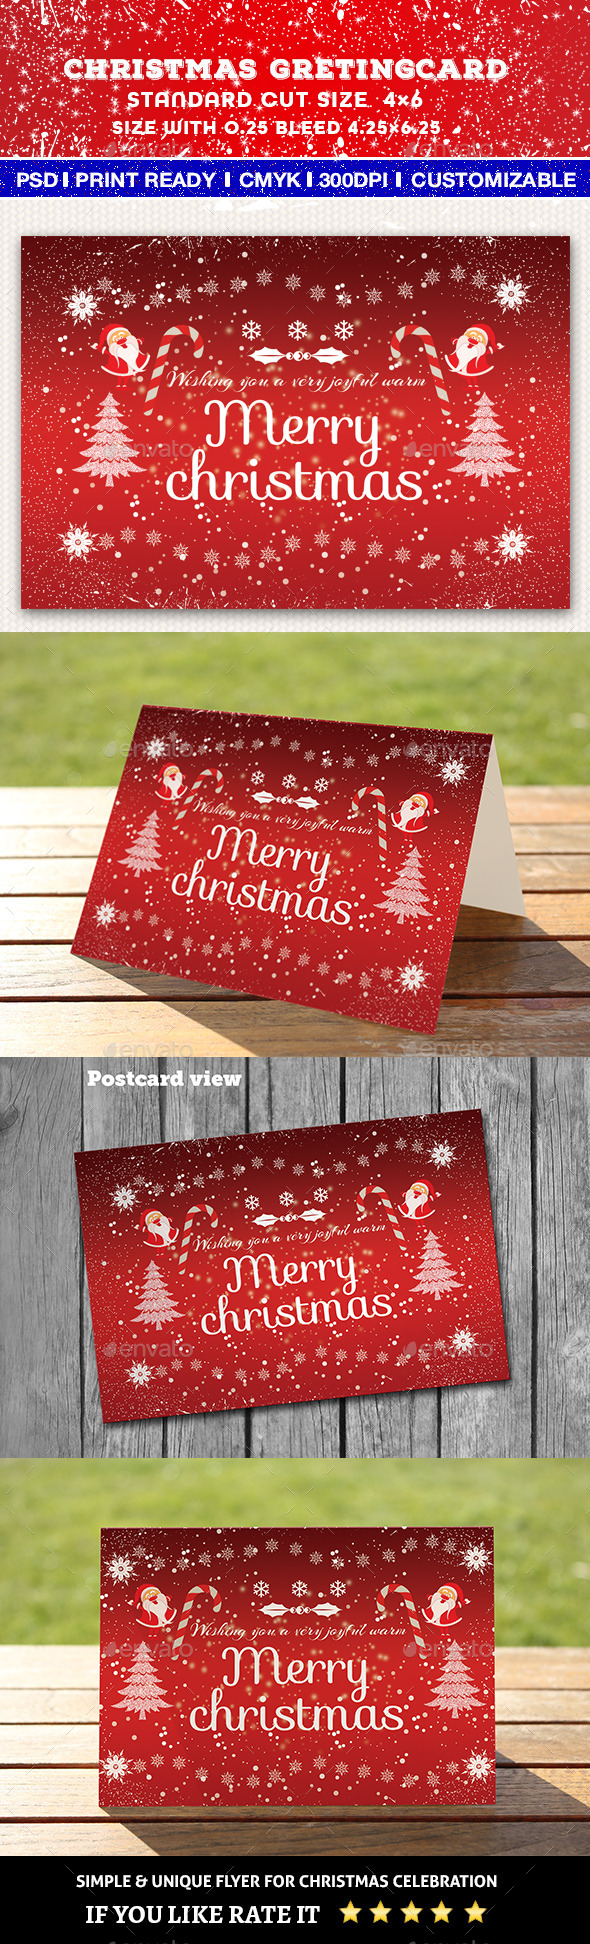 GraphicRiver Christmas Greeting Card 9681449